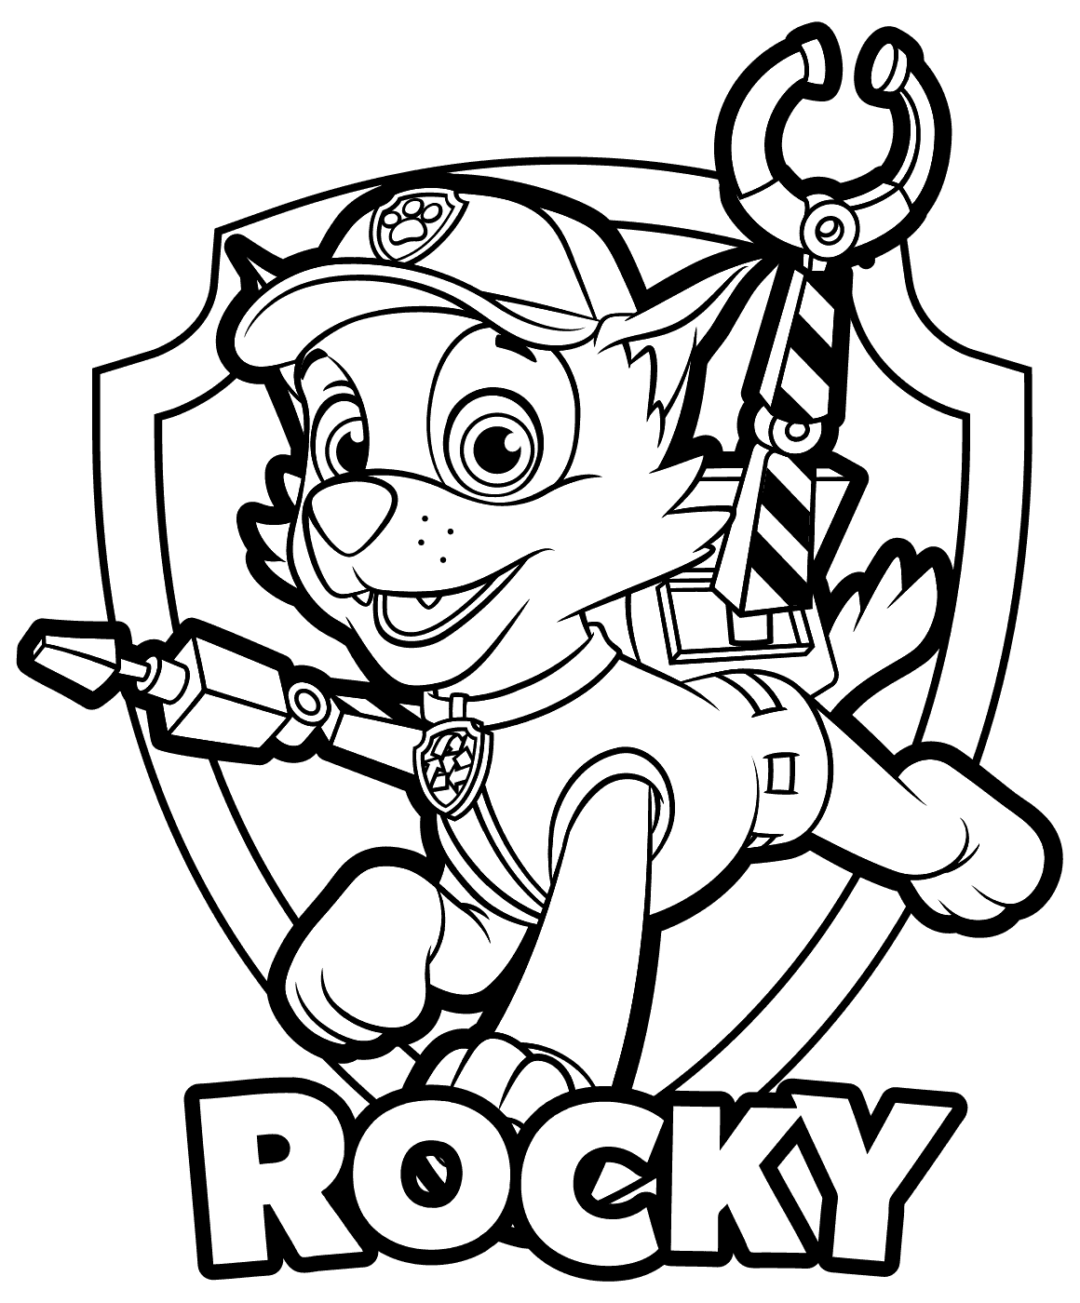 coloring.rocks! | Paw patrol coloring pages, Paw patrol coloring, Paw patrol  rocky